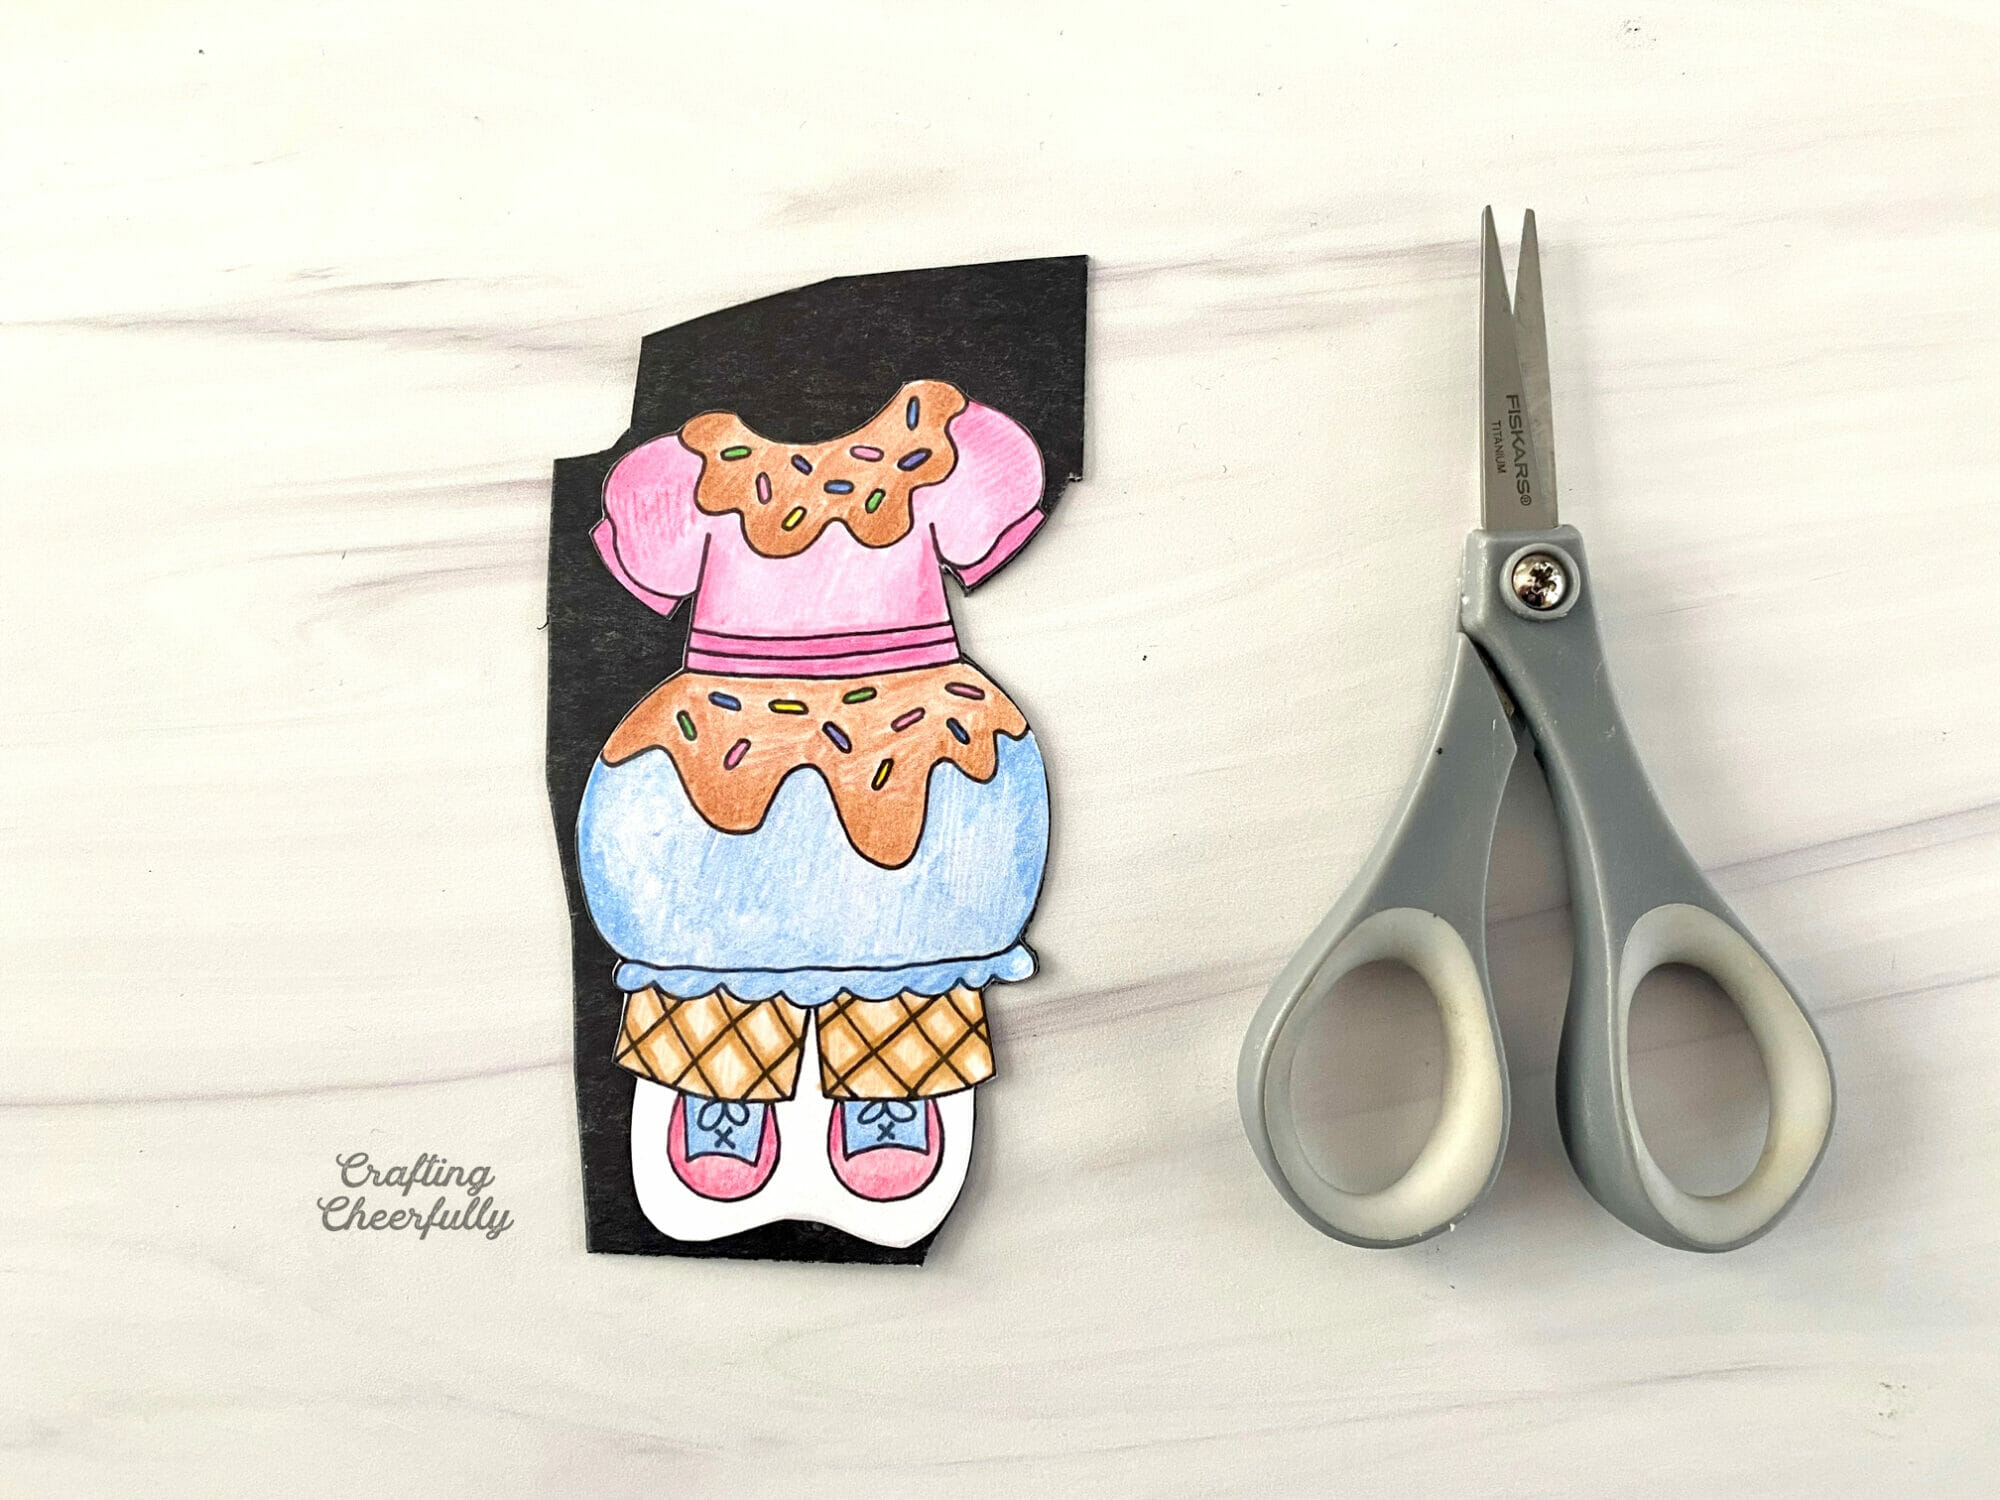 An ice cream costume is colored in on a piece of paper and adhered to a piece of magnet sheet.